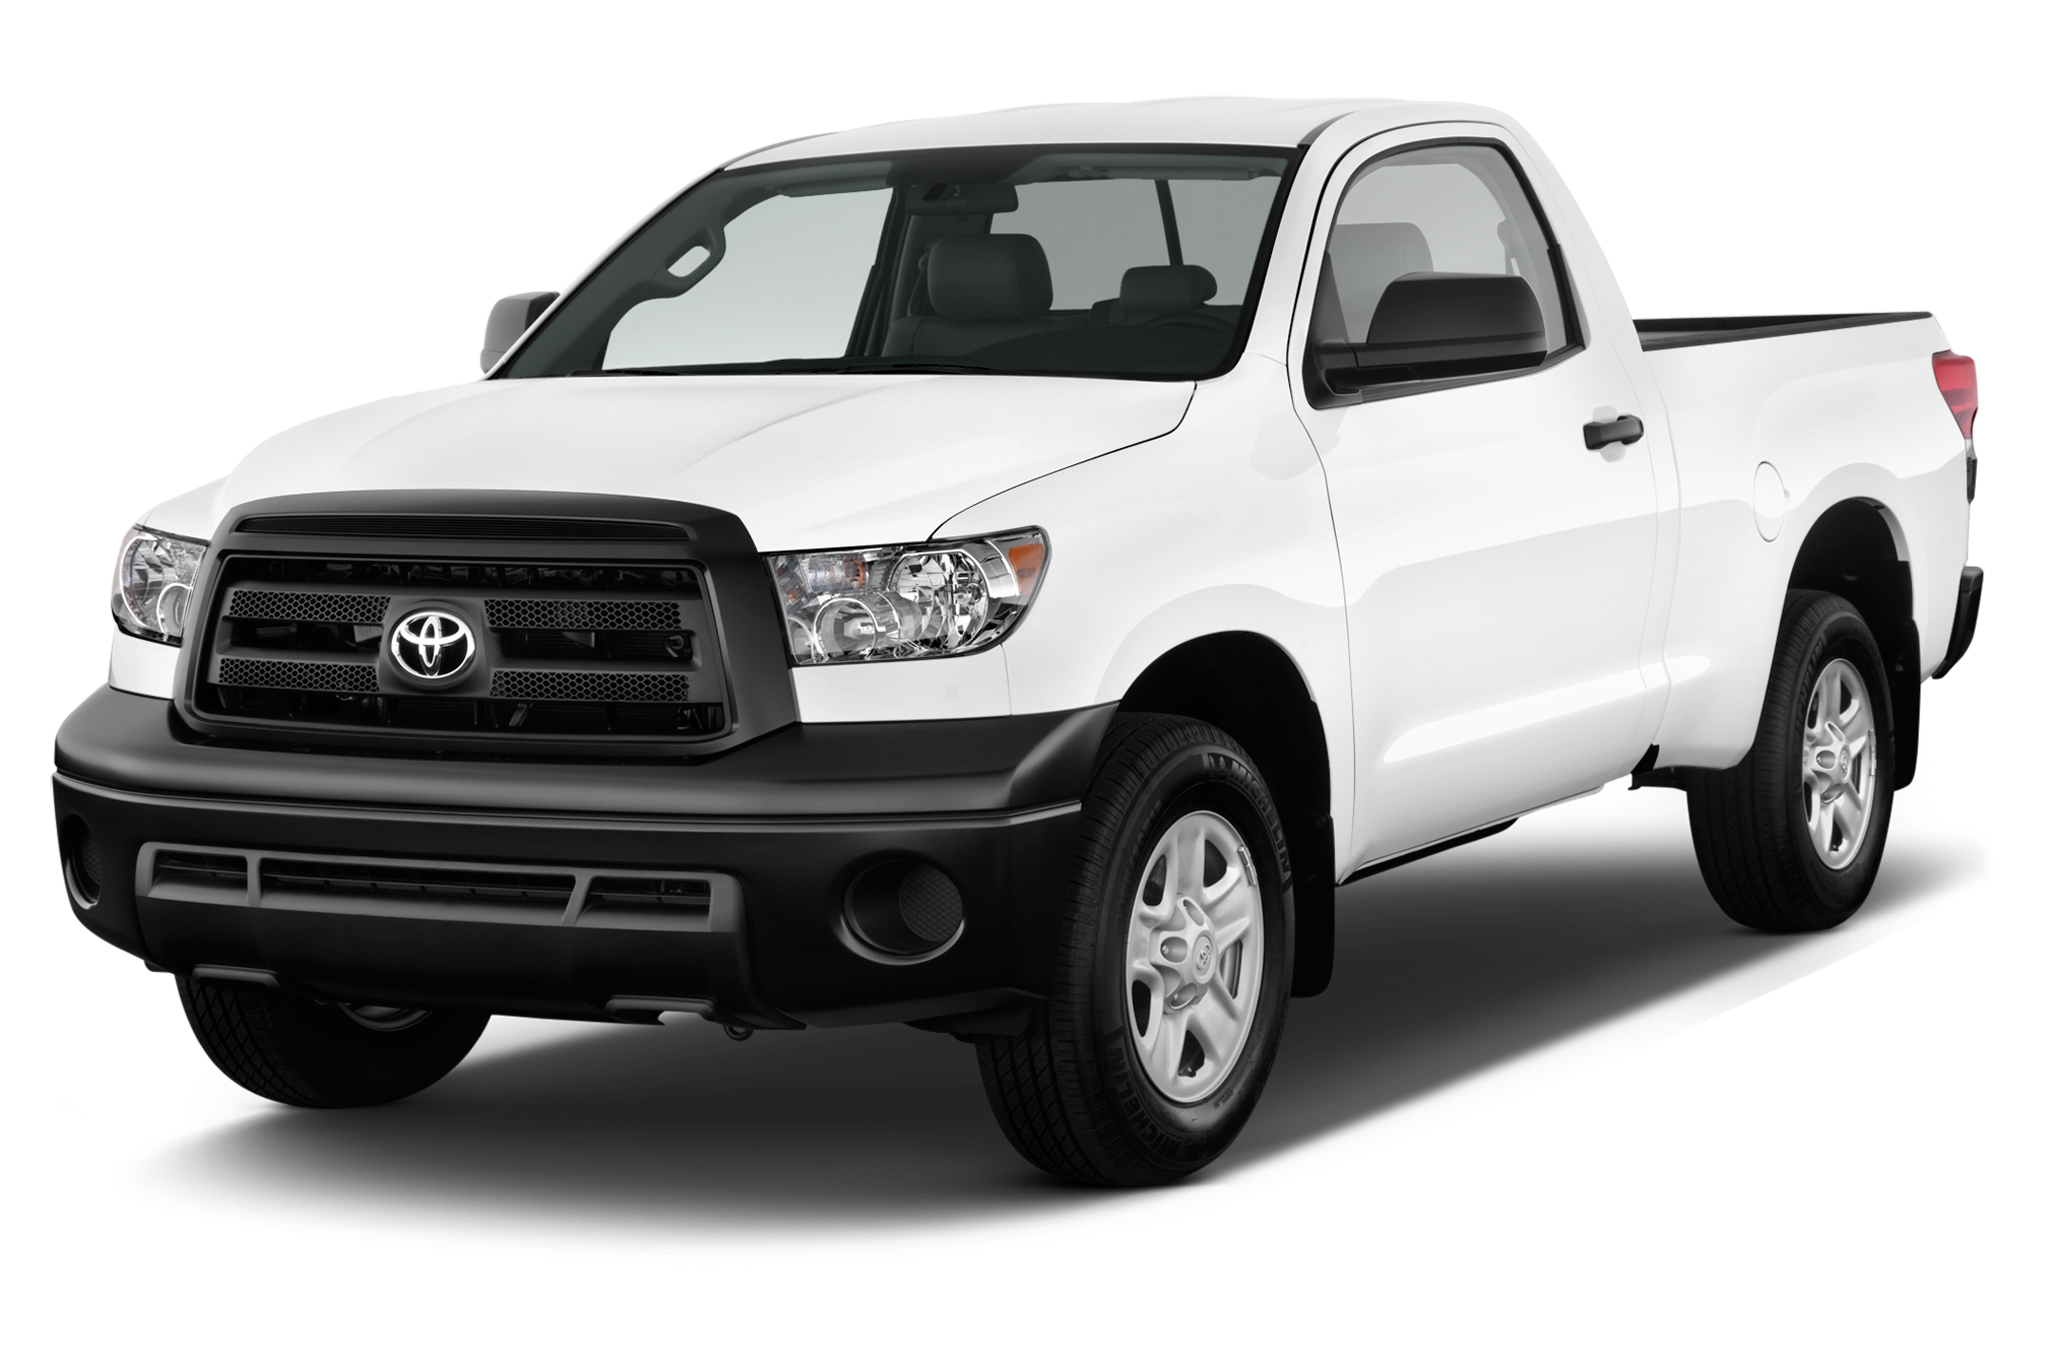 2010 toyota tundra double cab toyota fullsize pickup. Black Bedroom Furniture Sets. Home Design Ideas